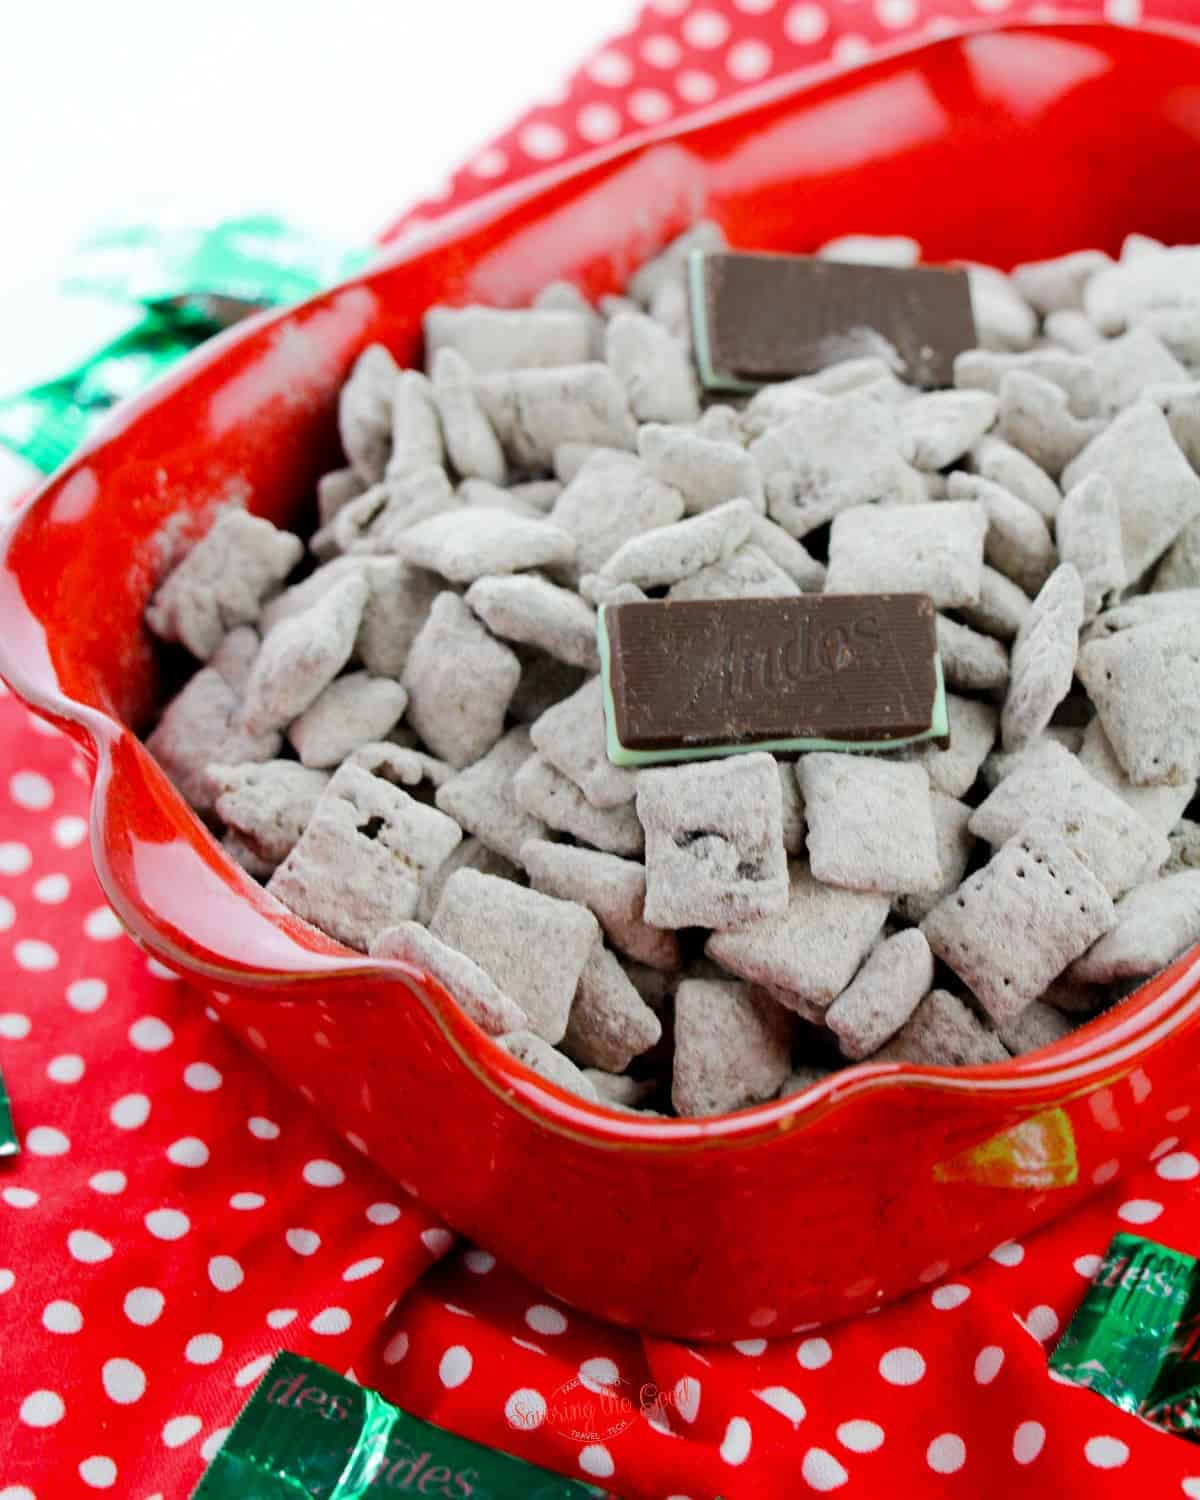 Christmas Puppy Chow with Andes candy as garnish on top in a bright red bowl